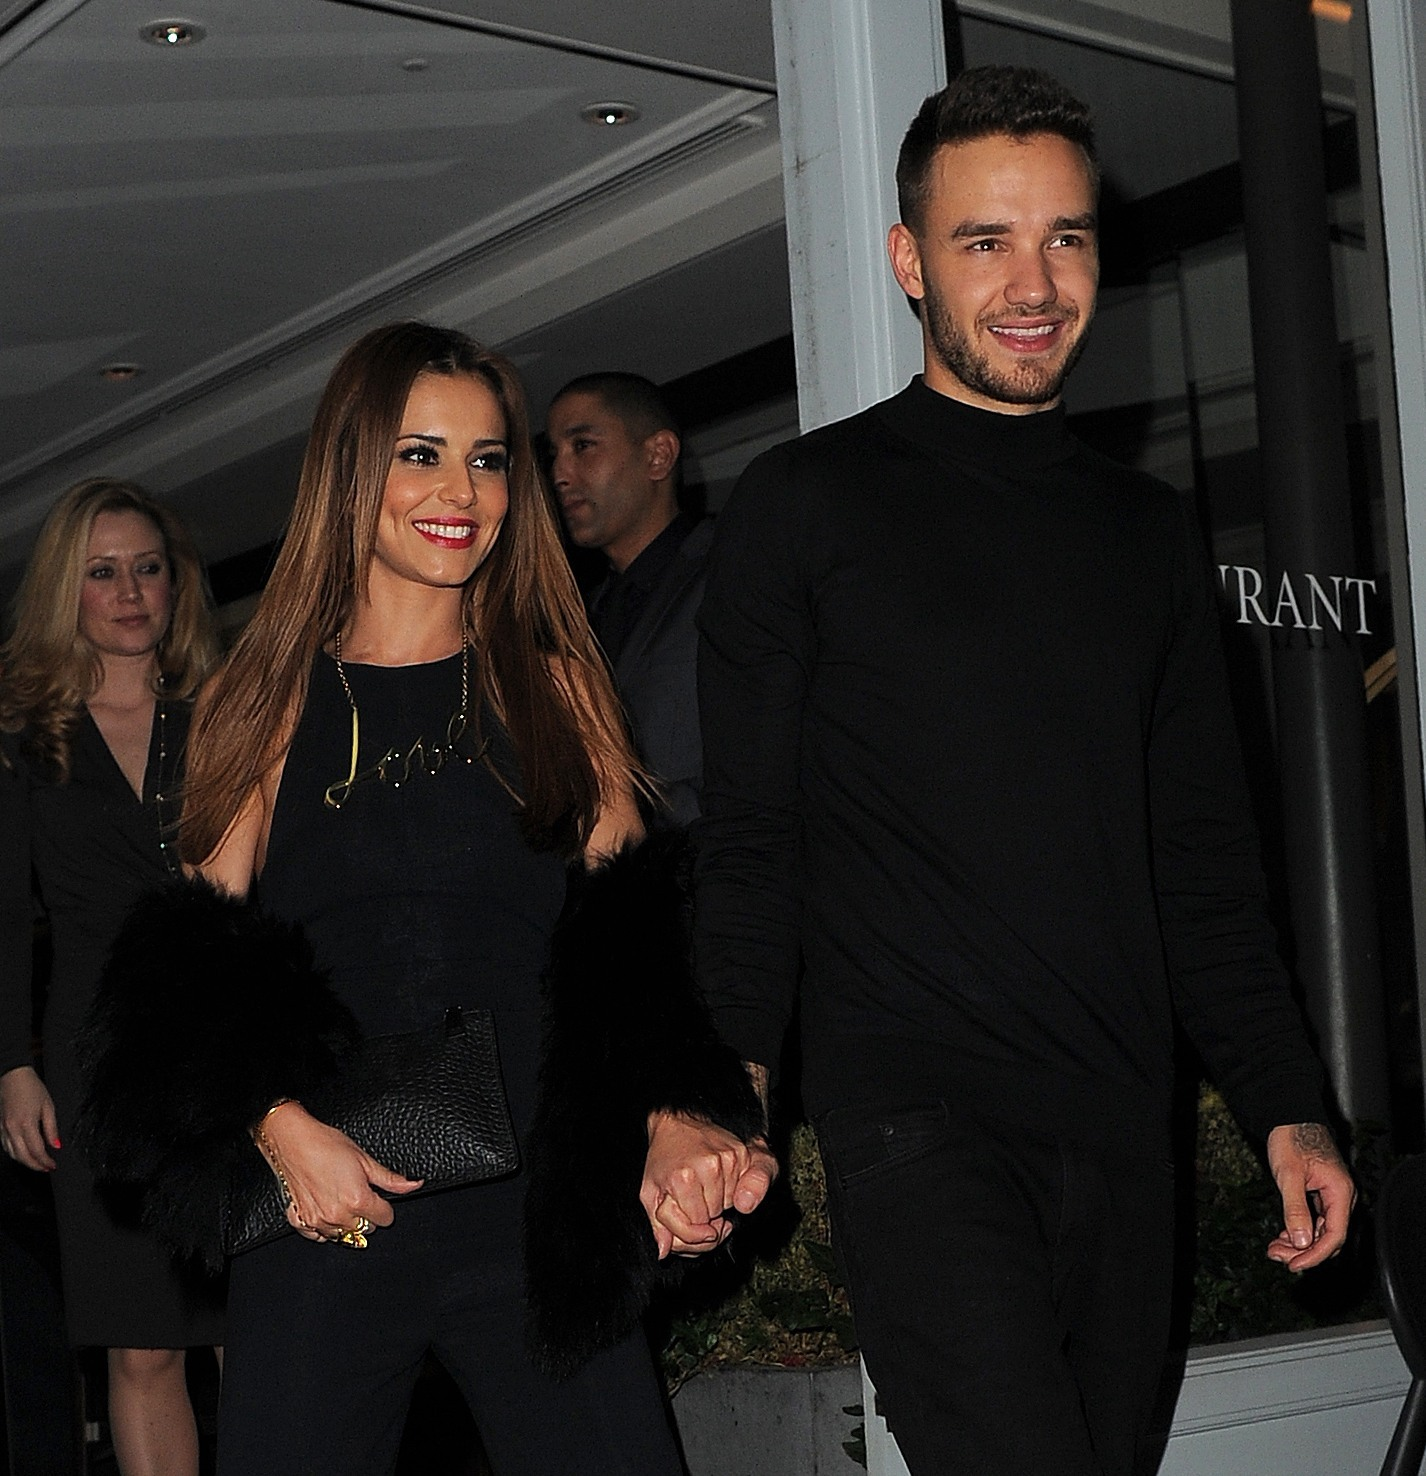 Liam Payne has got himself a tattoo tribute to Cheryl